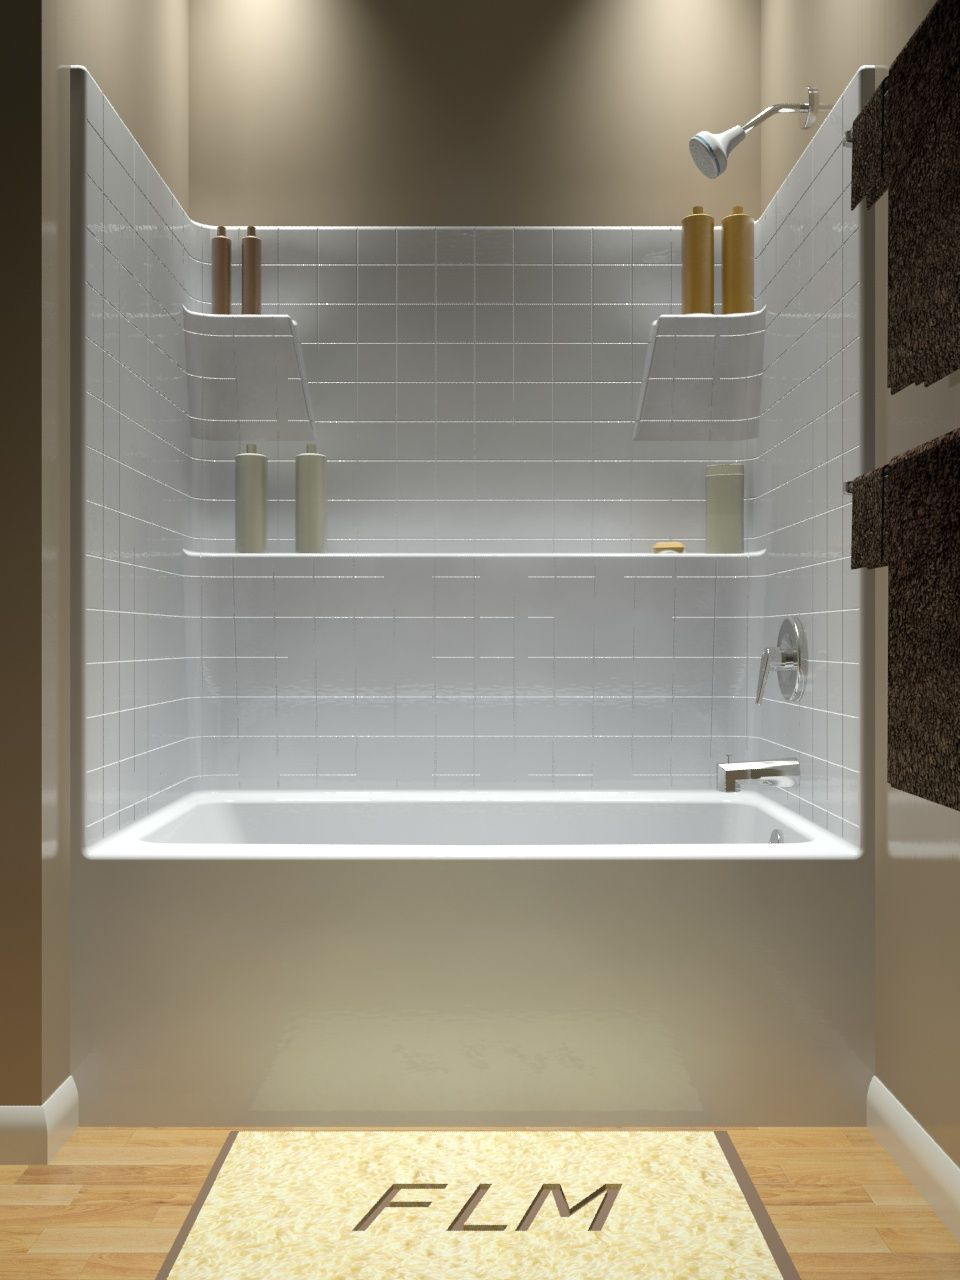 Acrylic One Piece Tub Shower. Tub and Shower  One Piece another Diamond option with more shelf space nearest distributor